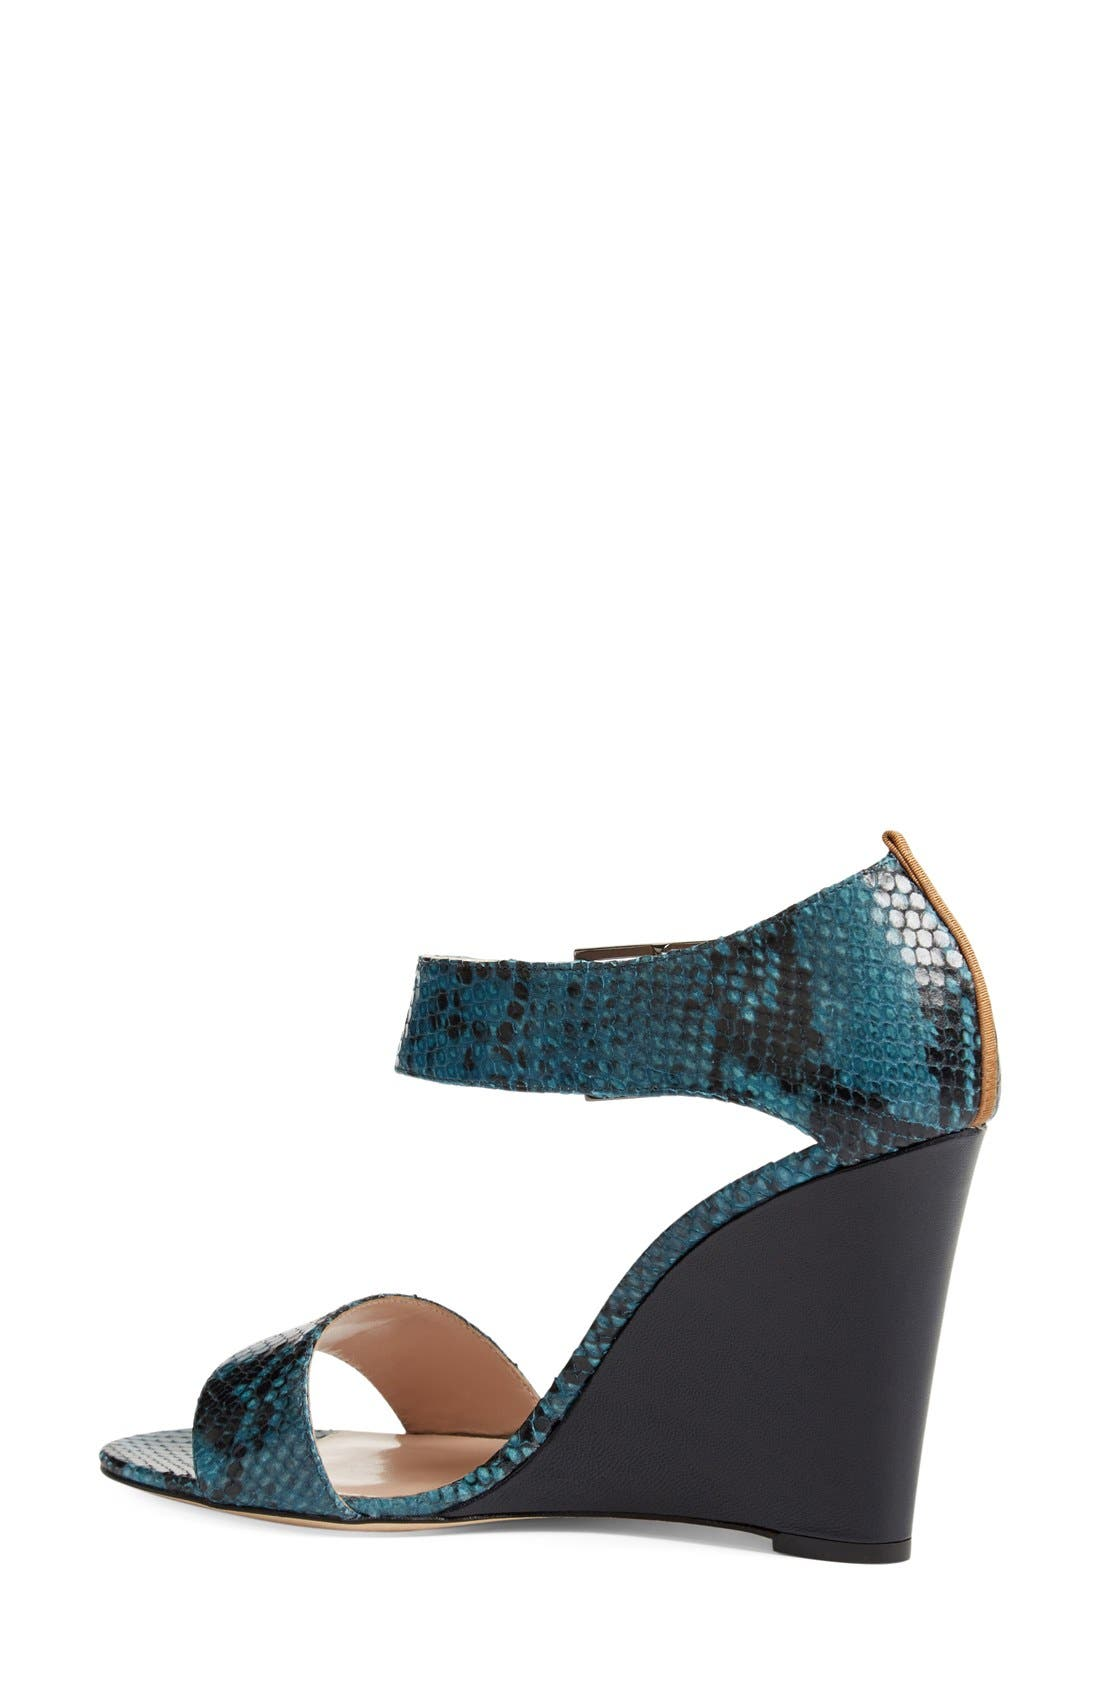 Alternate Image 2  - SJP by Sarah Jessica Parker 'Tate' Wedge Sandal (Women)